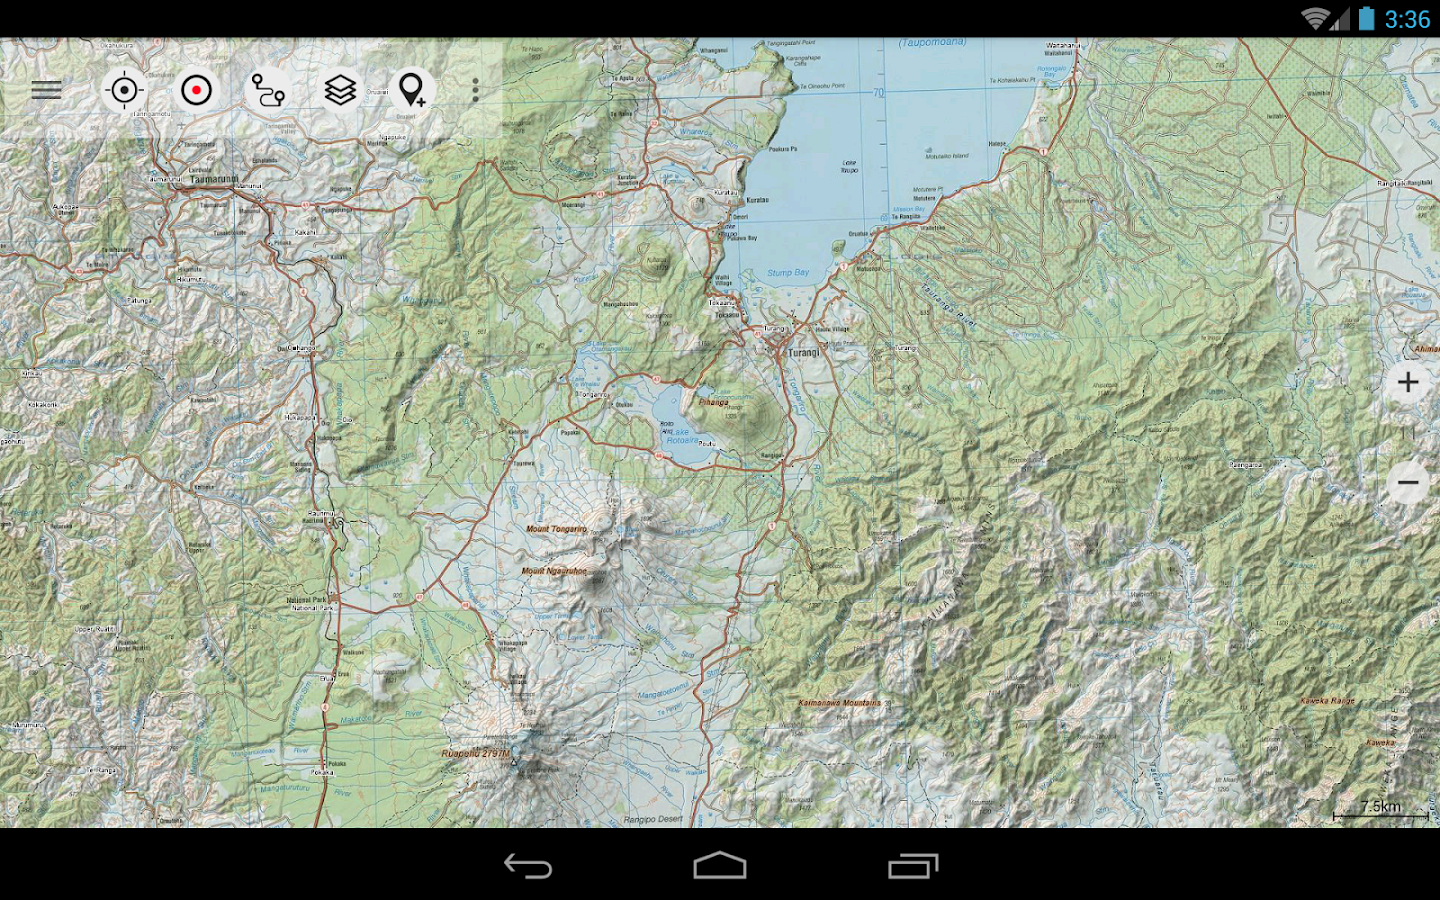 New Zealand Topo Maps Pro Android Apps On Google Play - Sweden map for garmin